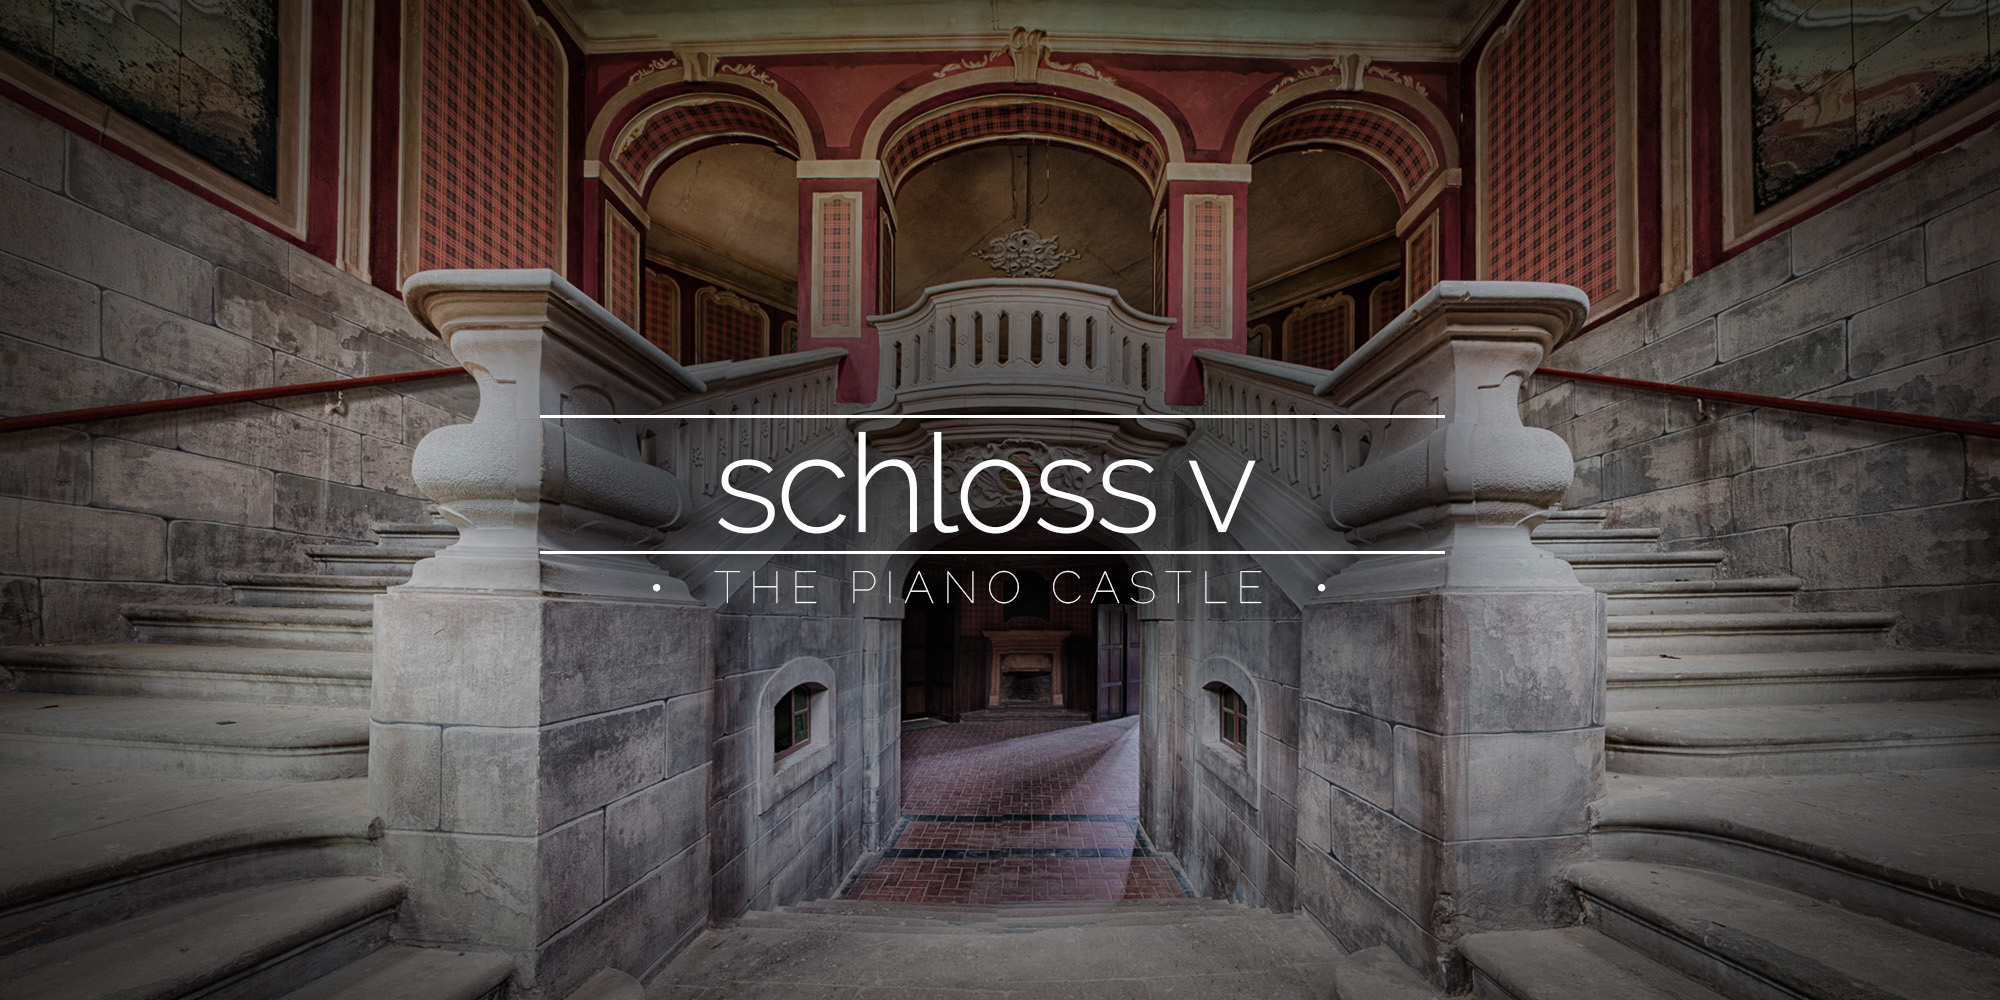 Schloss V Germany - The Piano Castle